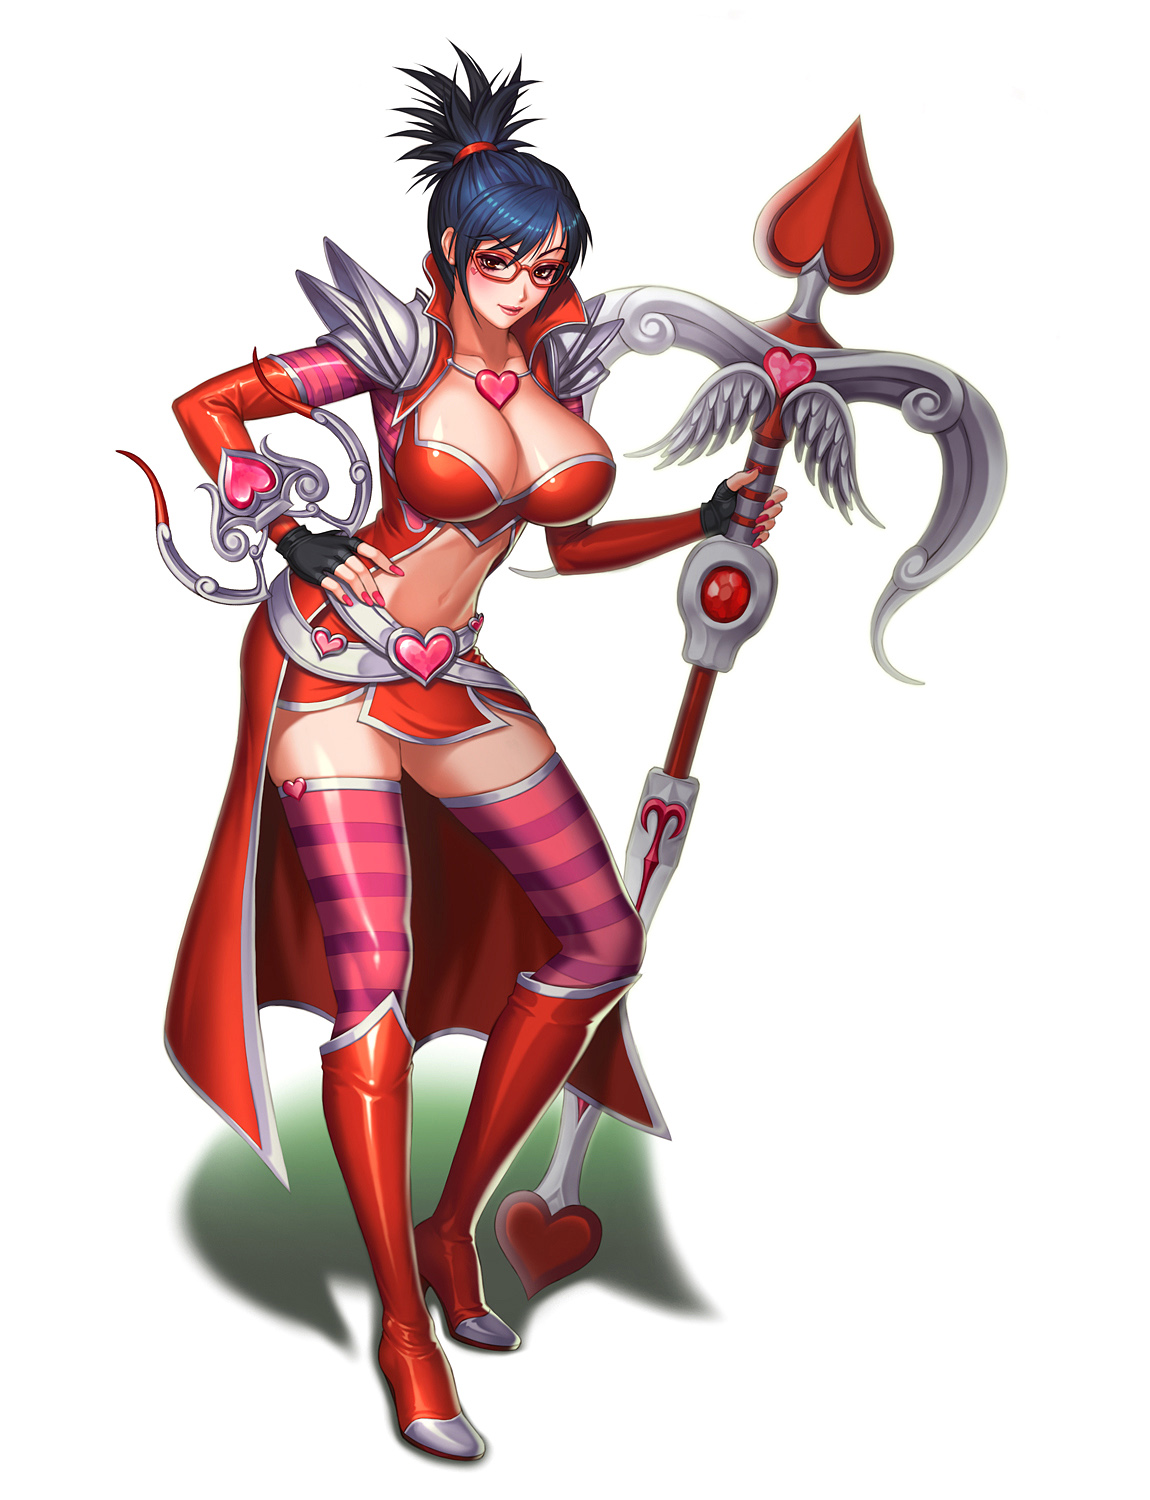 Heartseeker Vayne cleavage photos